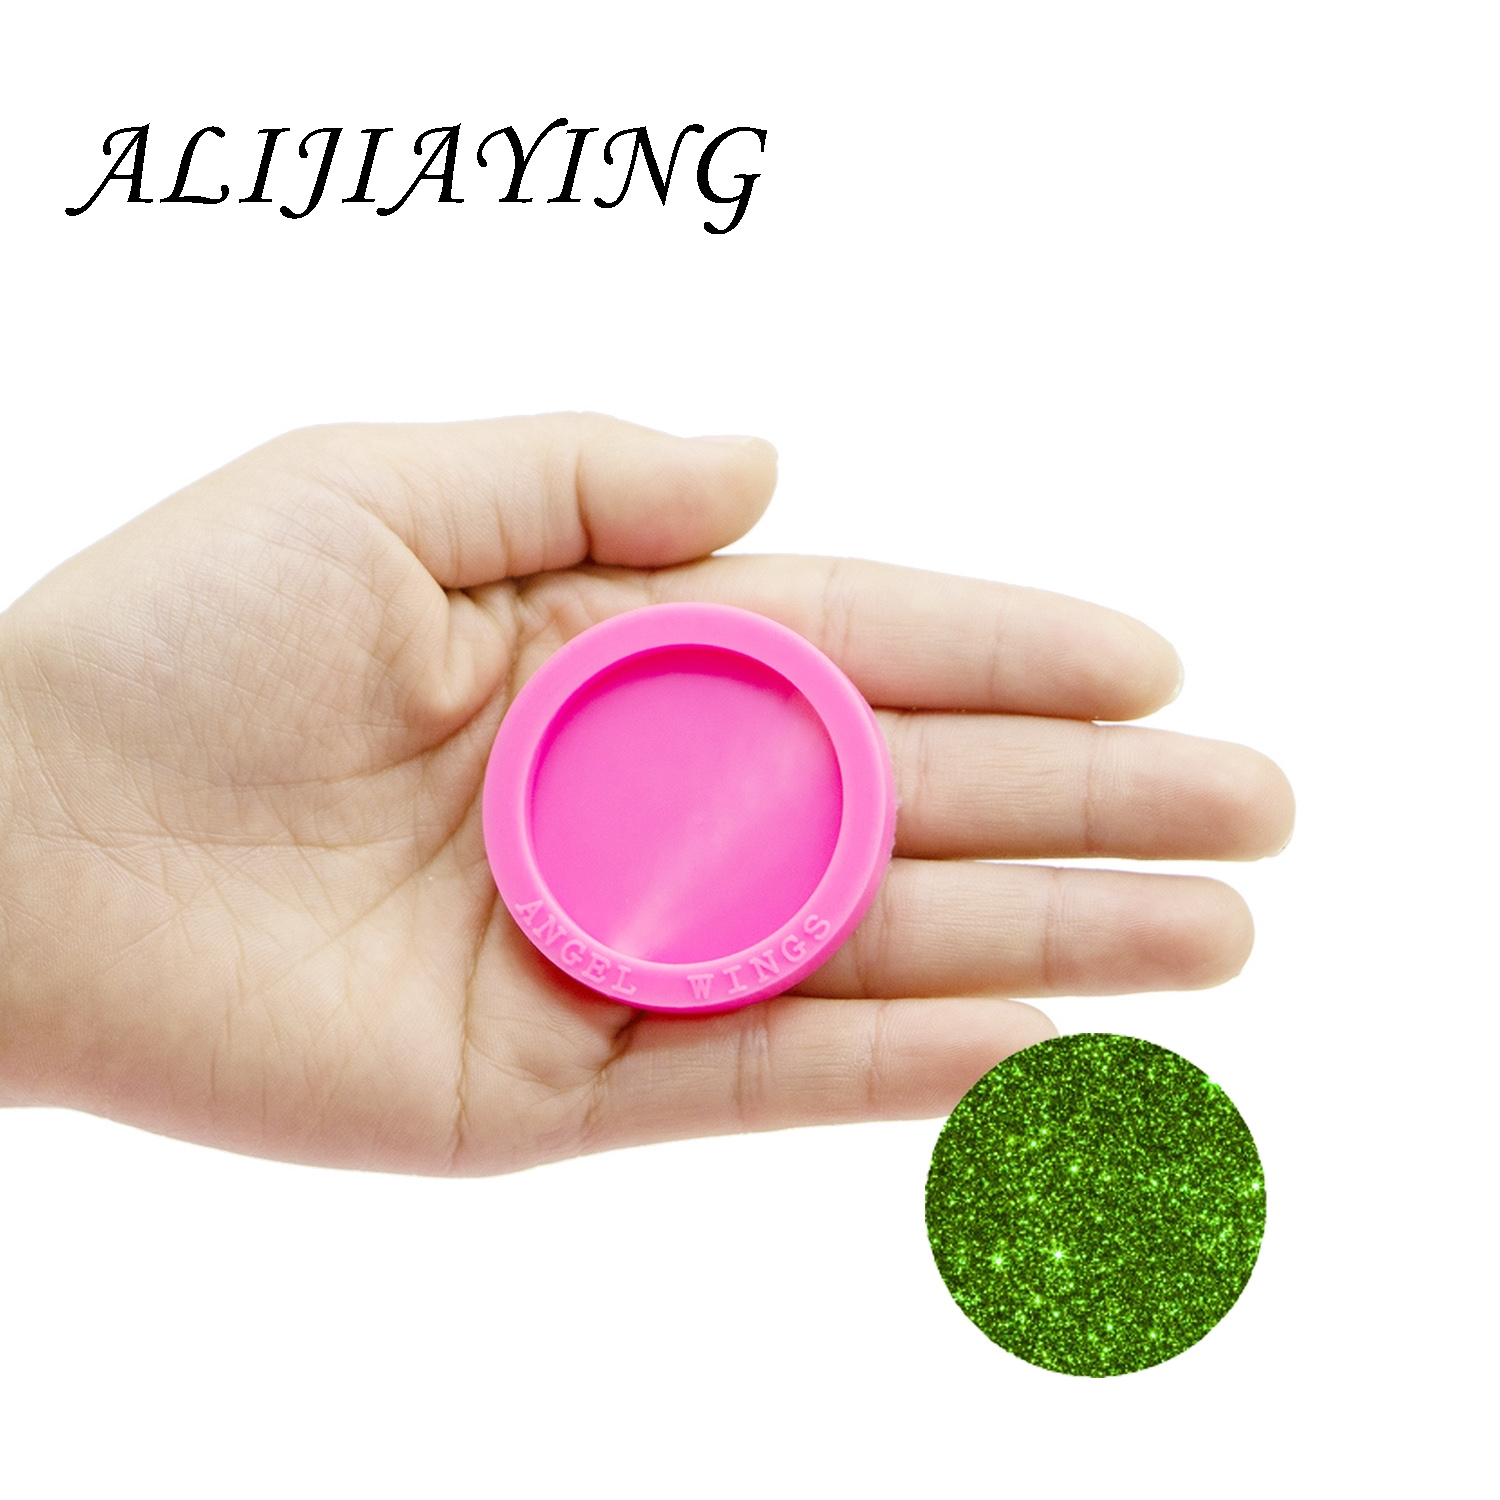 1.5 Inch Circle Molds Silicone Mold For Resin Epoxy Craft  DIY Round Silicone Keychains Fits On A 1.5 Inch Badge Reel  DY0260